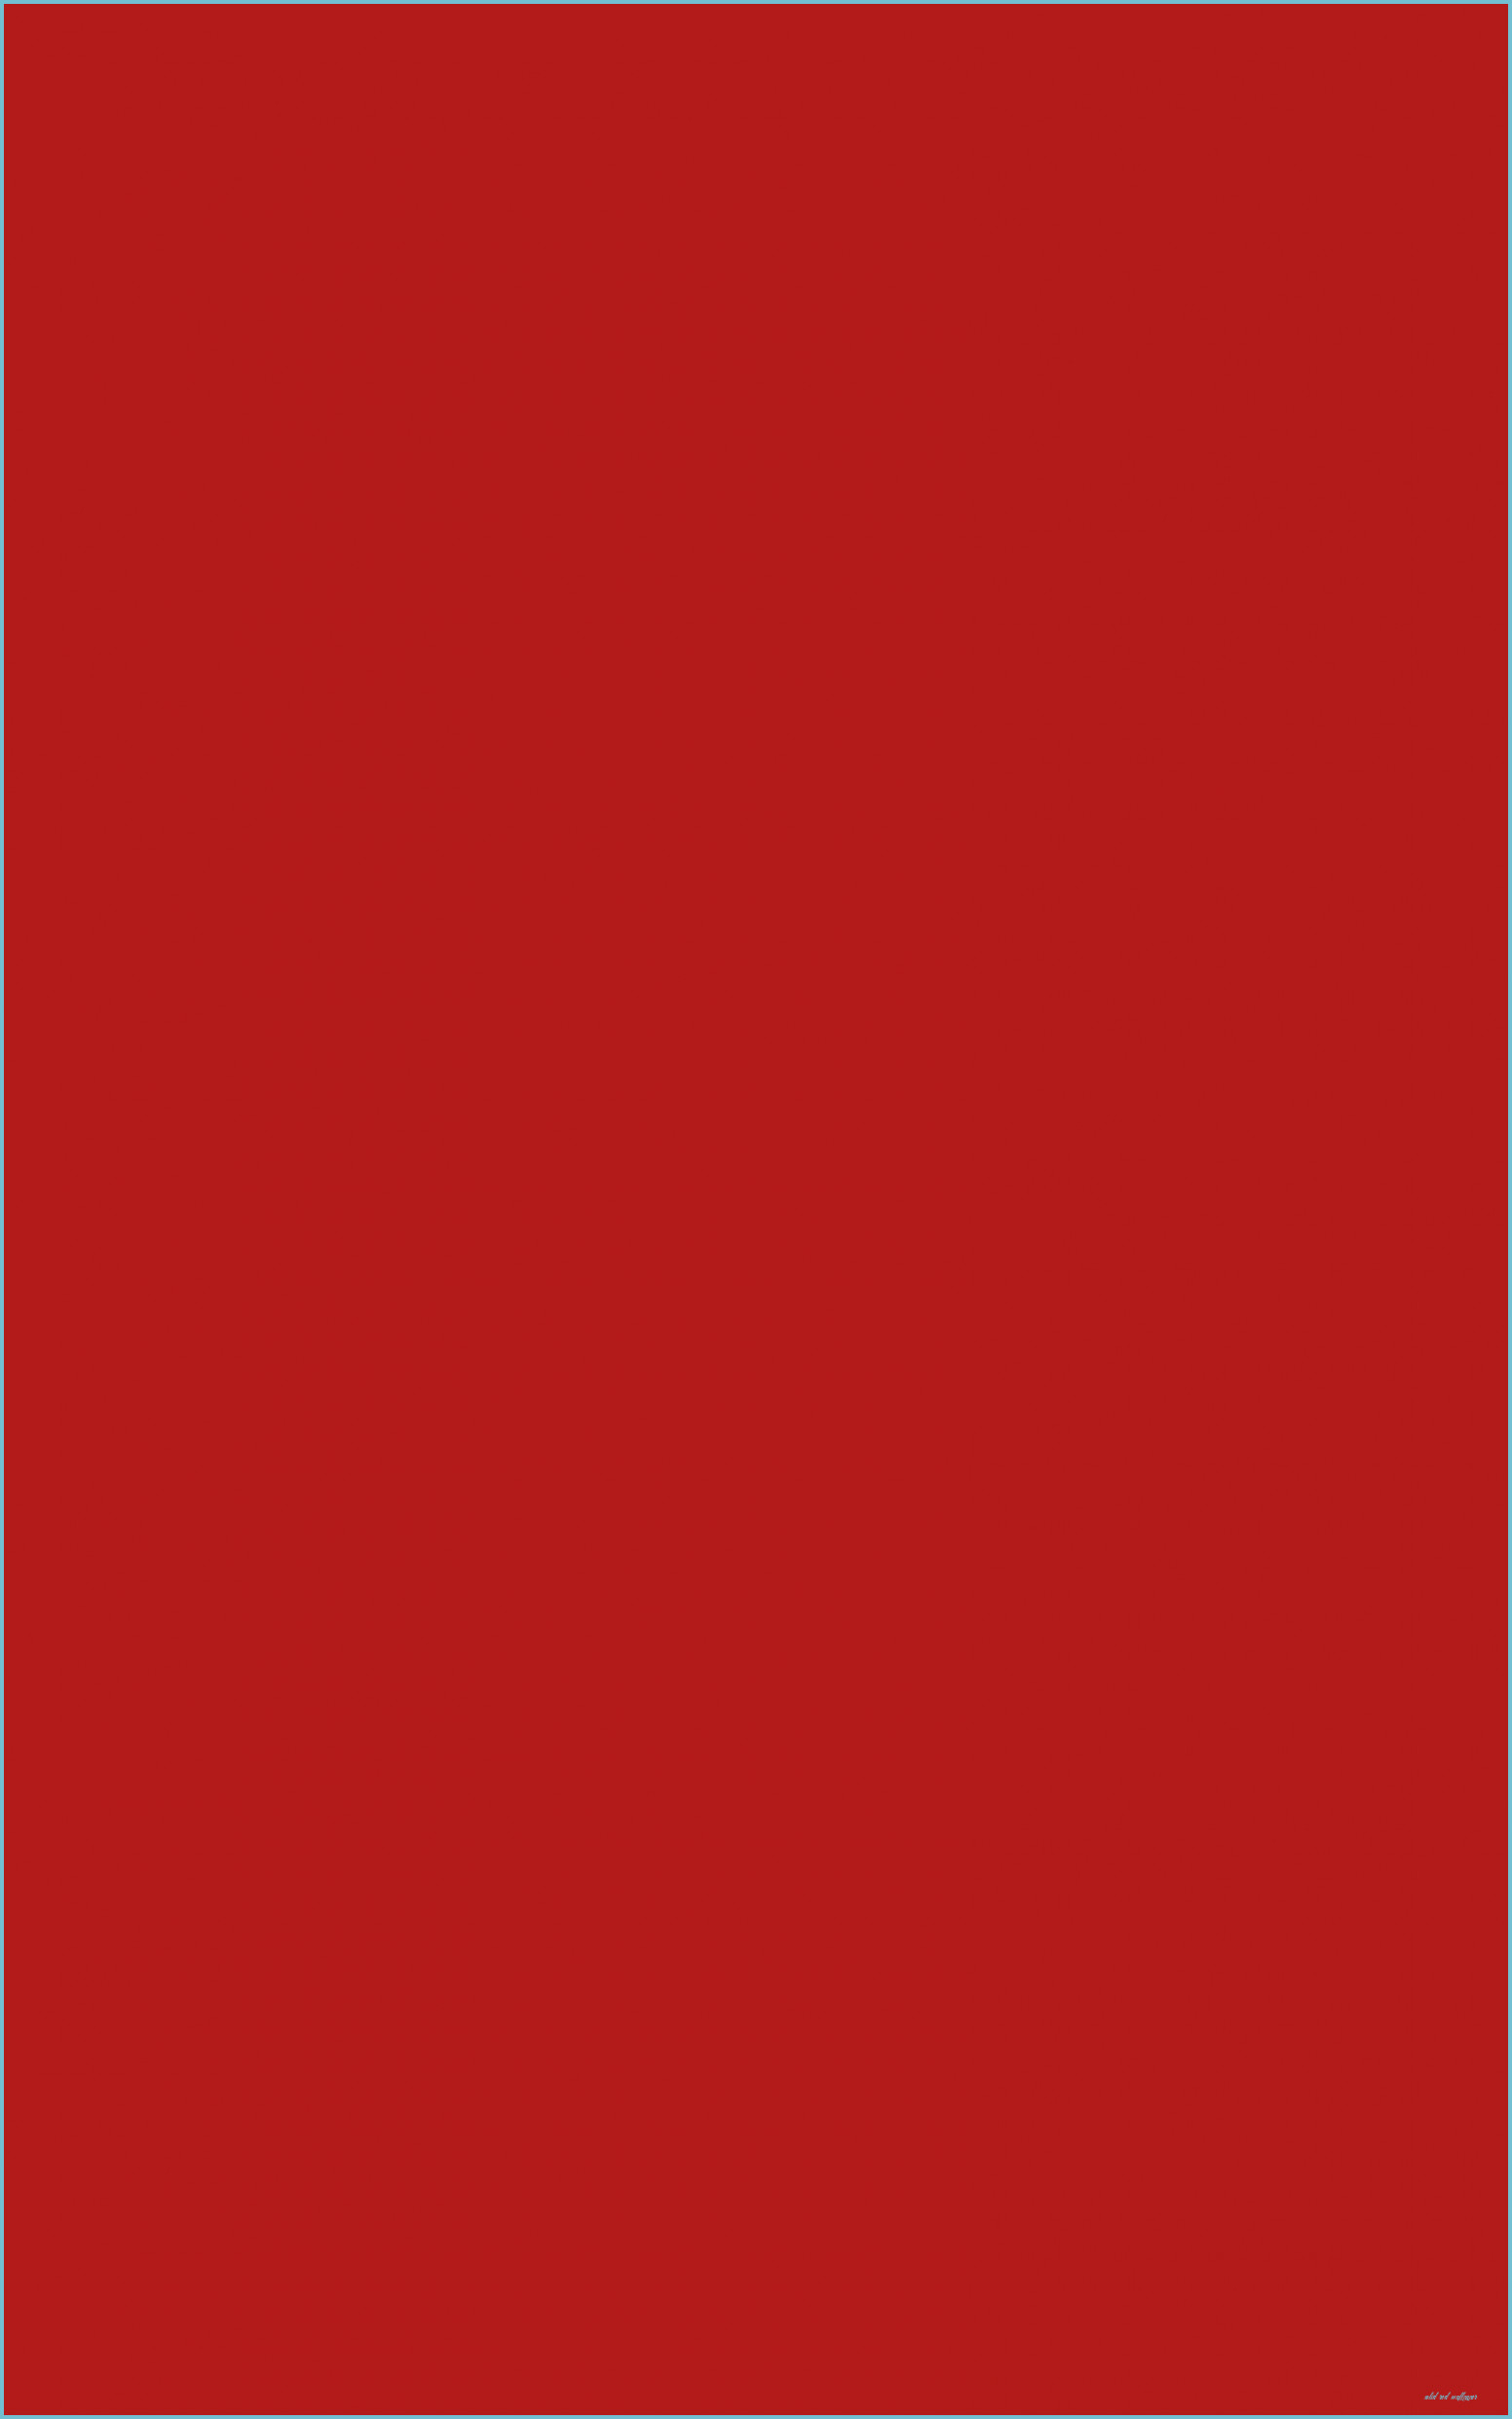 red background iphone wallpaper red paint colors solid color solid red wallpaper